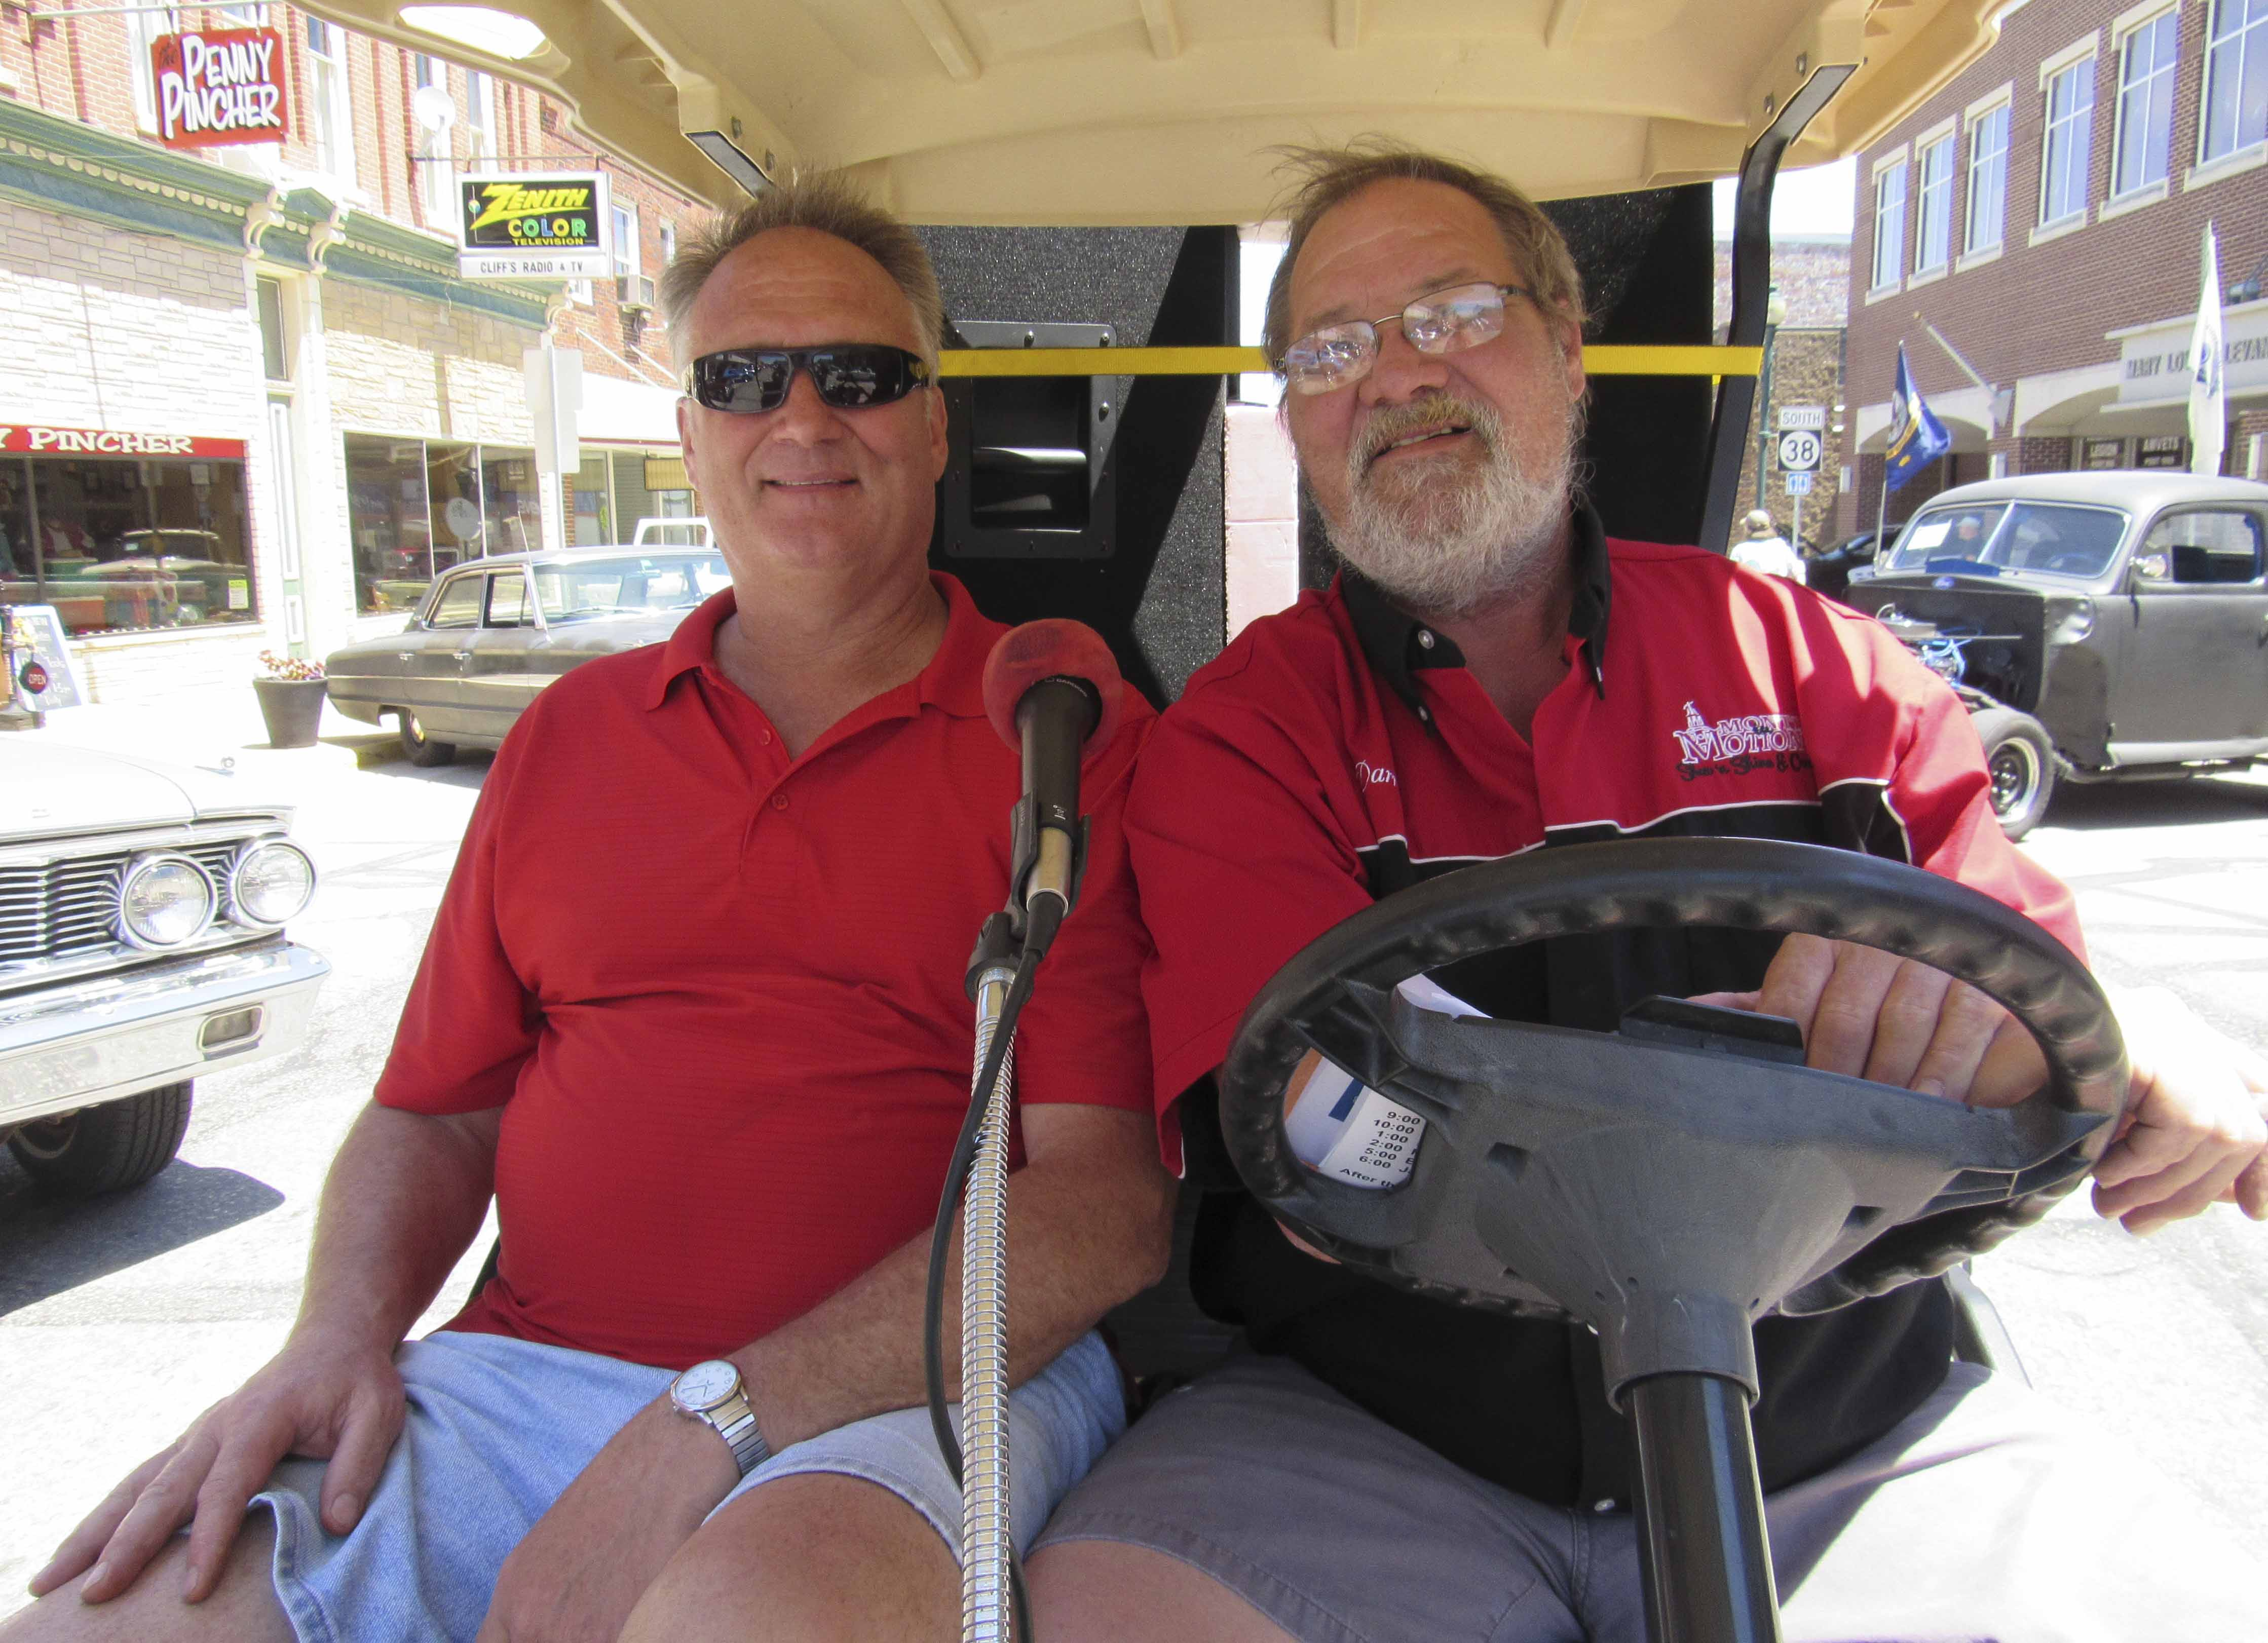 Greg Kromminga and Darrell Reyner entertained the Monti in Motion crowd on June 10 with classic tunes. Both men also brought classic cars of their own to display.